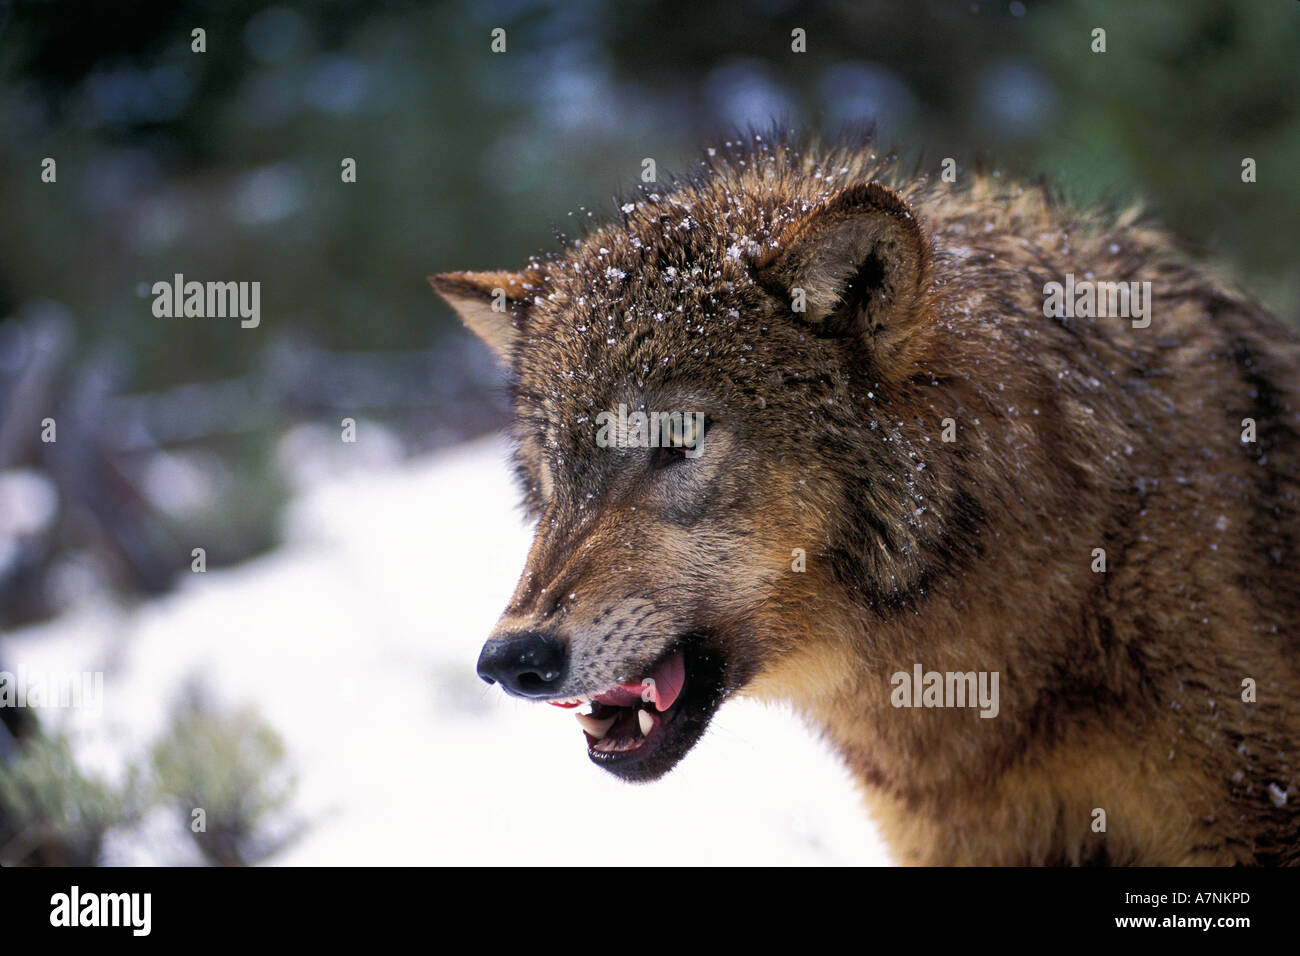 Grey Wolf Snarling With Teeth Bared Stock Photo: 6790060